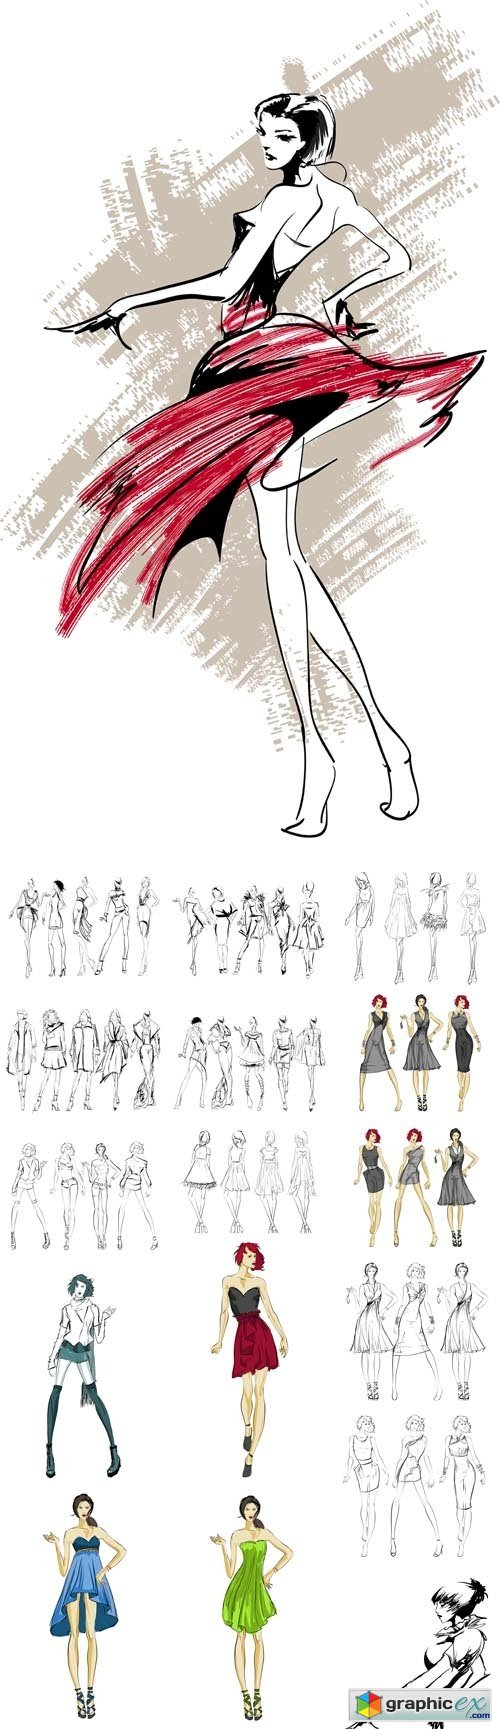 Sketch.Fashion Girls on a White Background